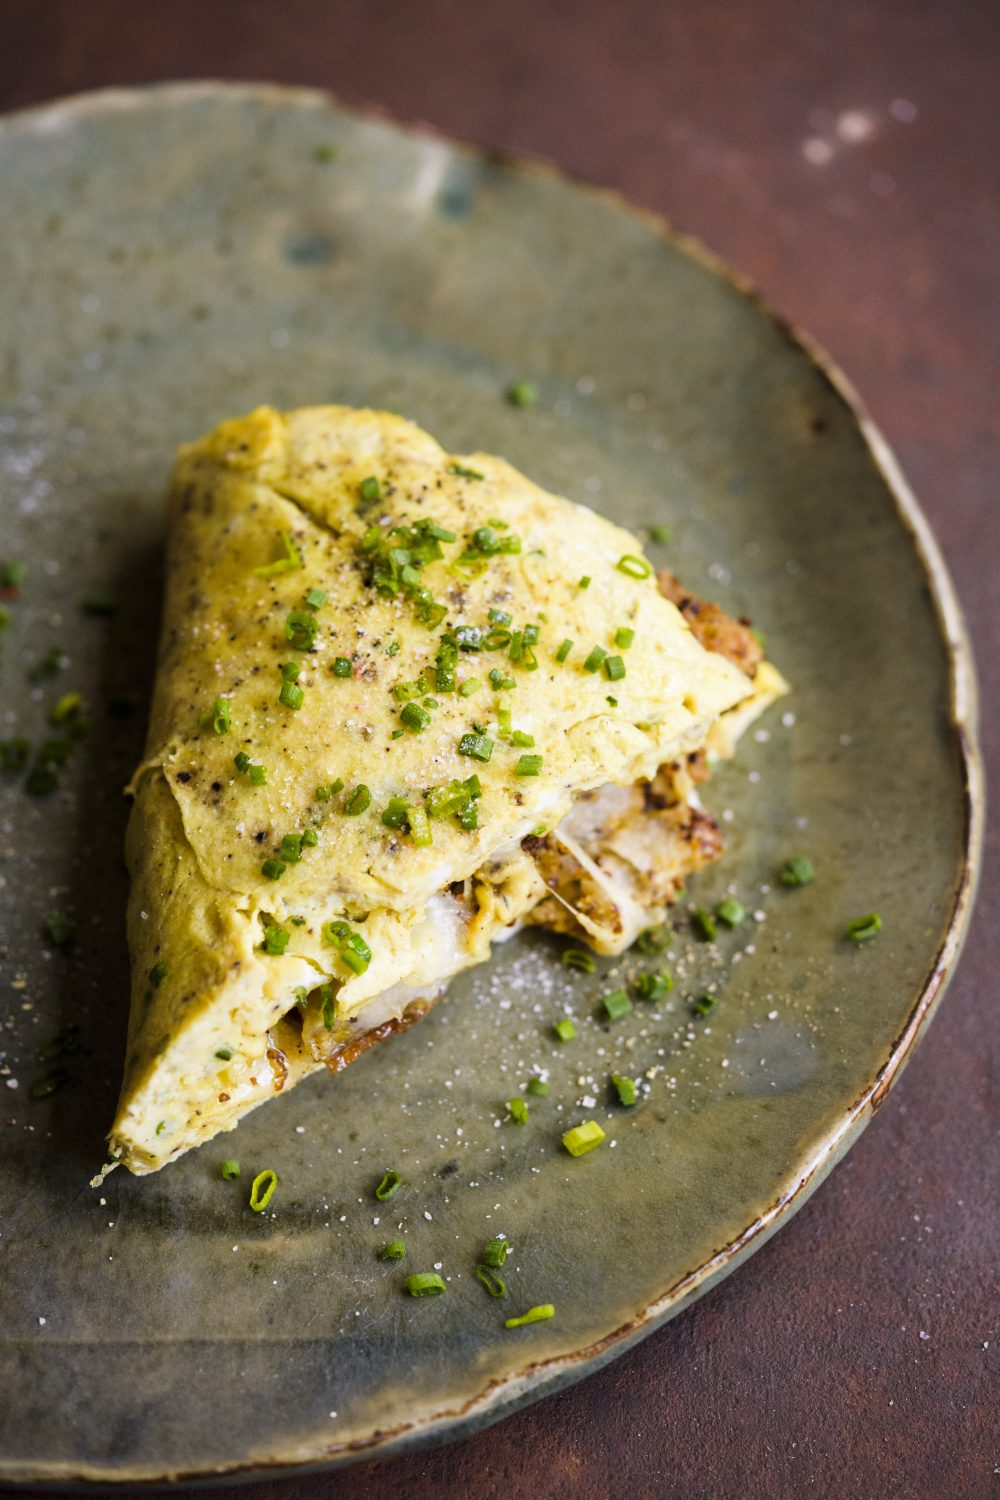 Gruyère and Chive Omelet